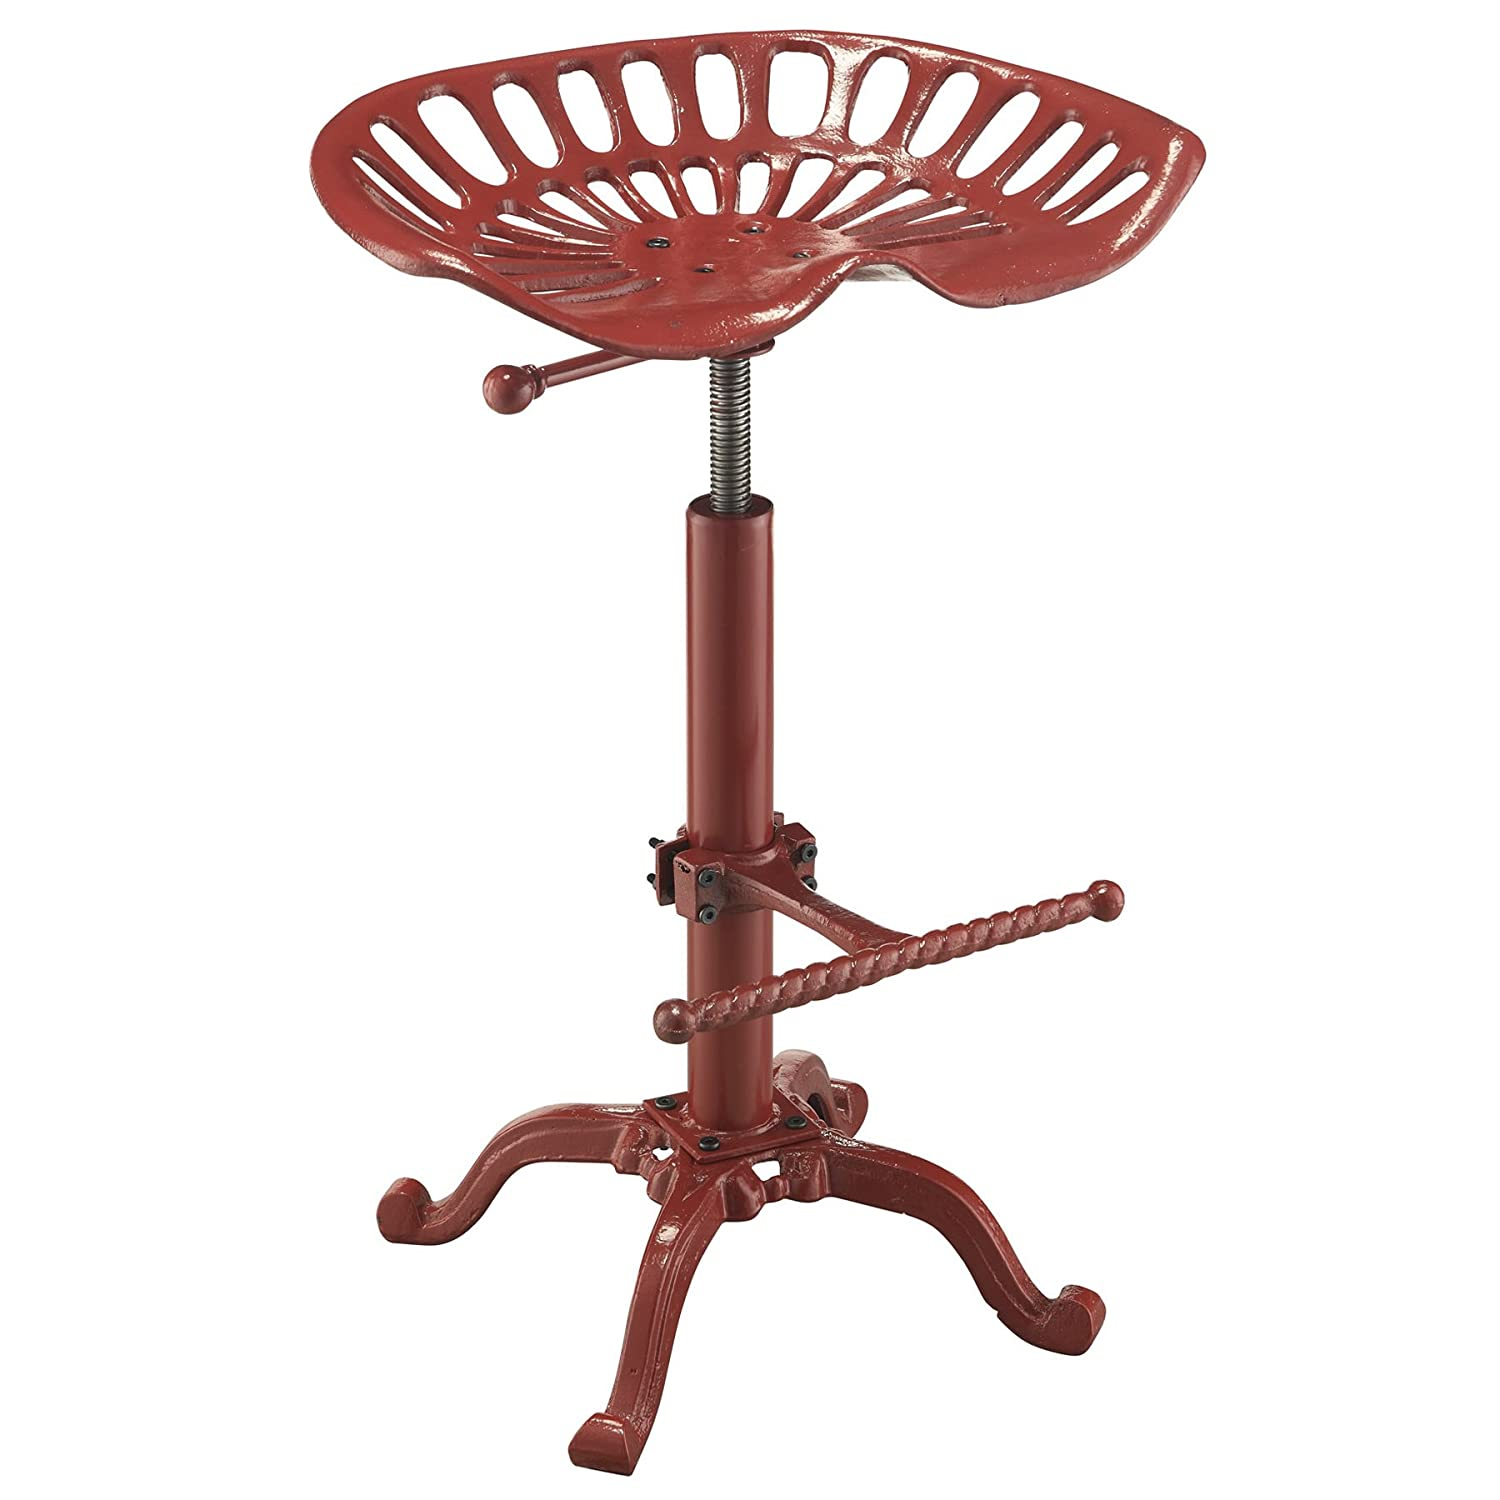 Design Tractor Seat Stool amazon com carolina chair and table adjustable colton tractor seat stool red kitchen dining